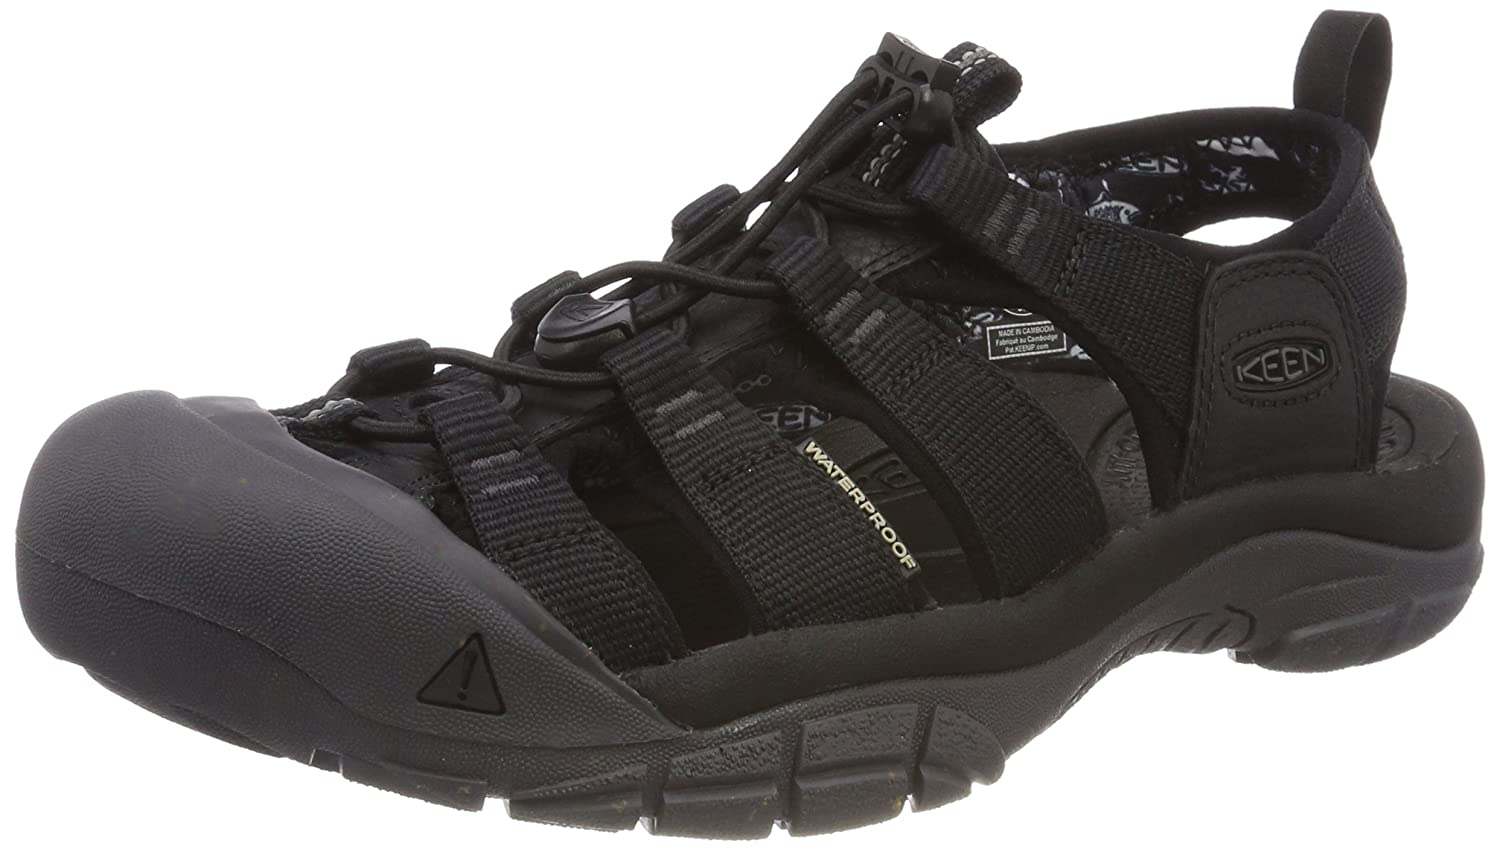 Keen Men's Newport ECO Sandals, Black/Magnet 1018803